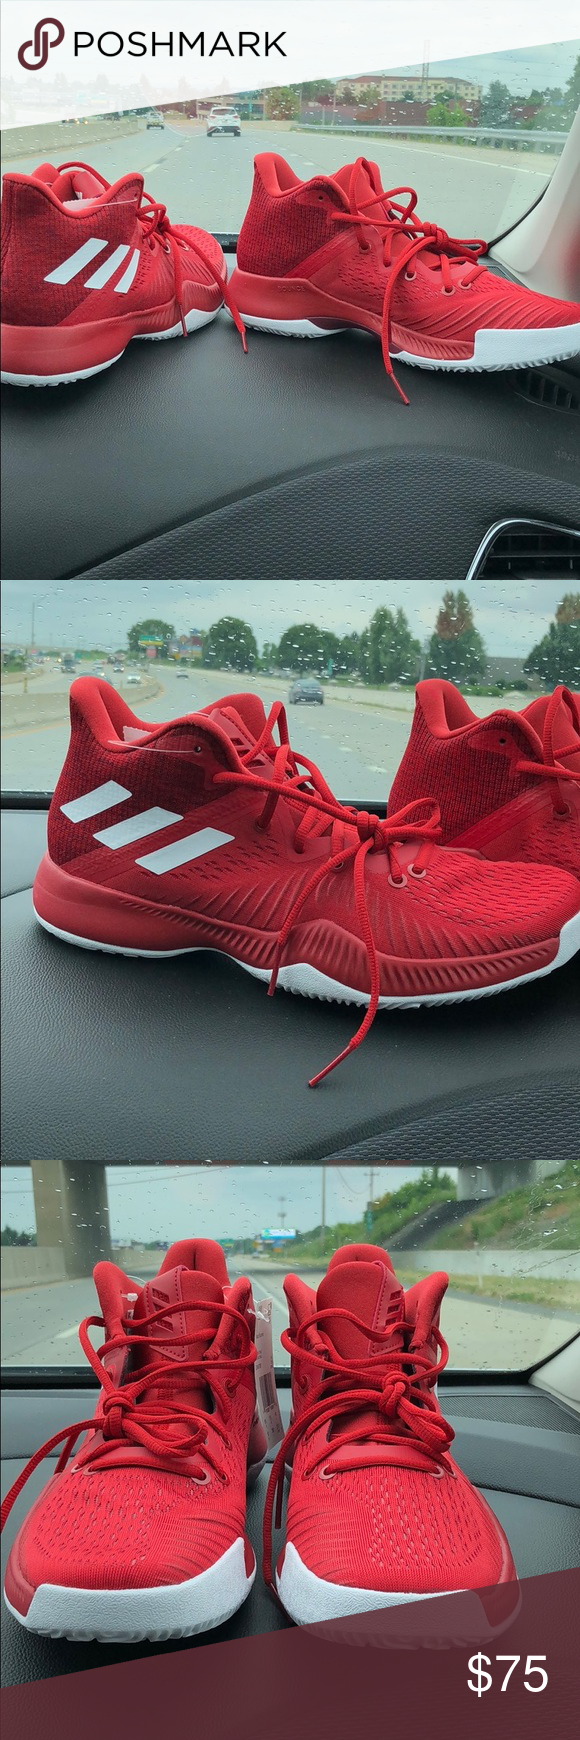 fd1a89b5c Adidas James Harden Mad Bounce Men Basketball Shoe Authentic DEADSTOCK Adidas  James Harden Mad Bounce Mens